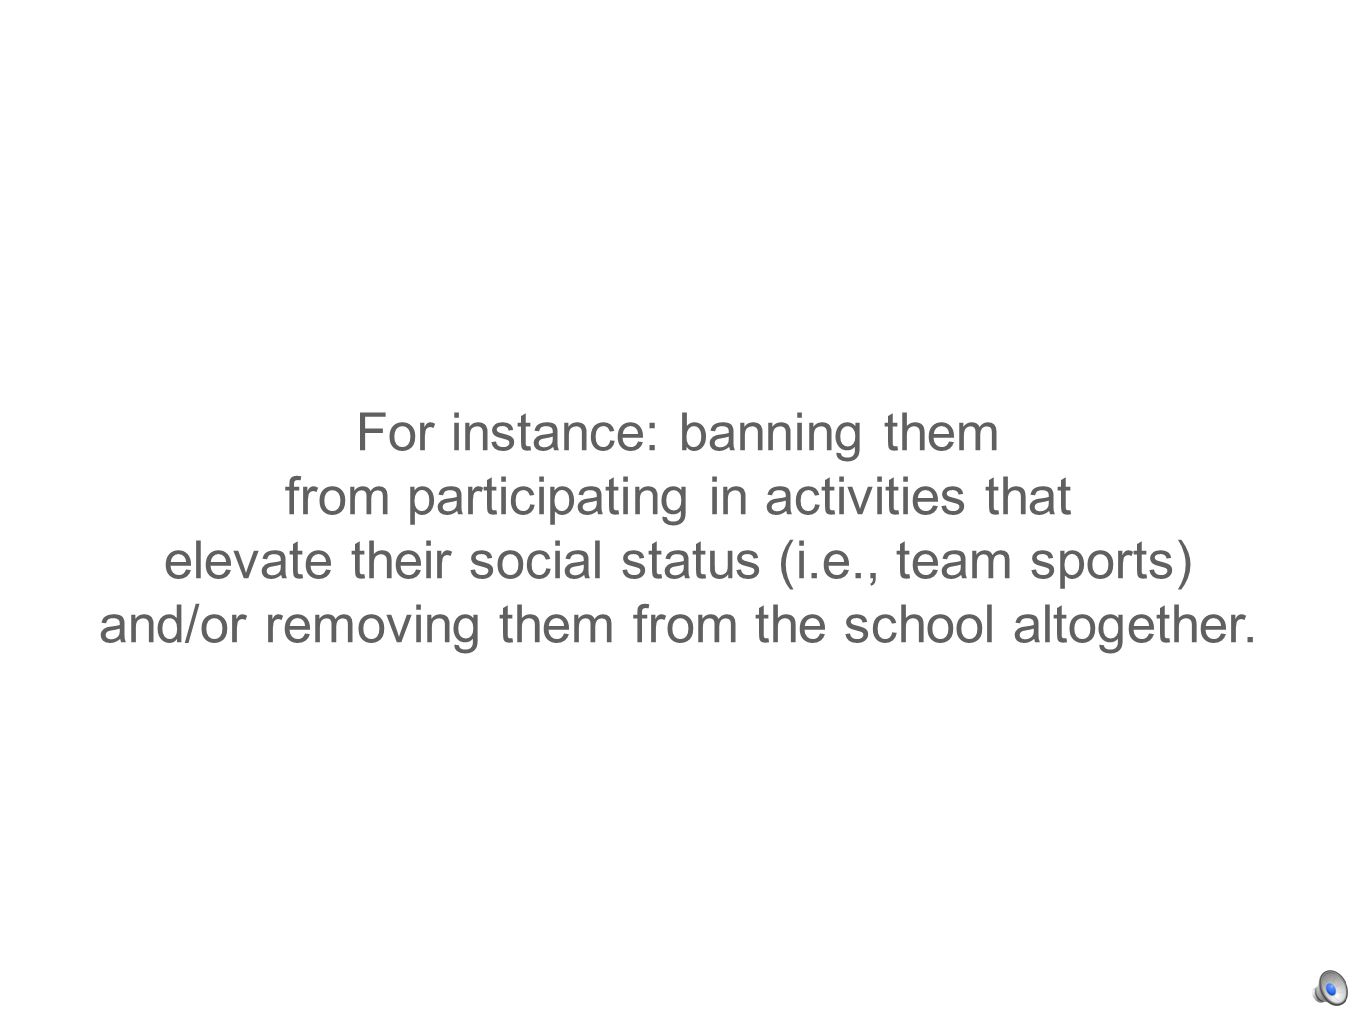 For instance: banning them from participating in activities that elevate their social status (i.e., team sports) and/or removing them from the school altogether.